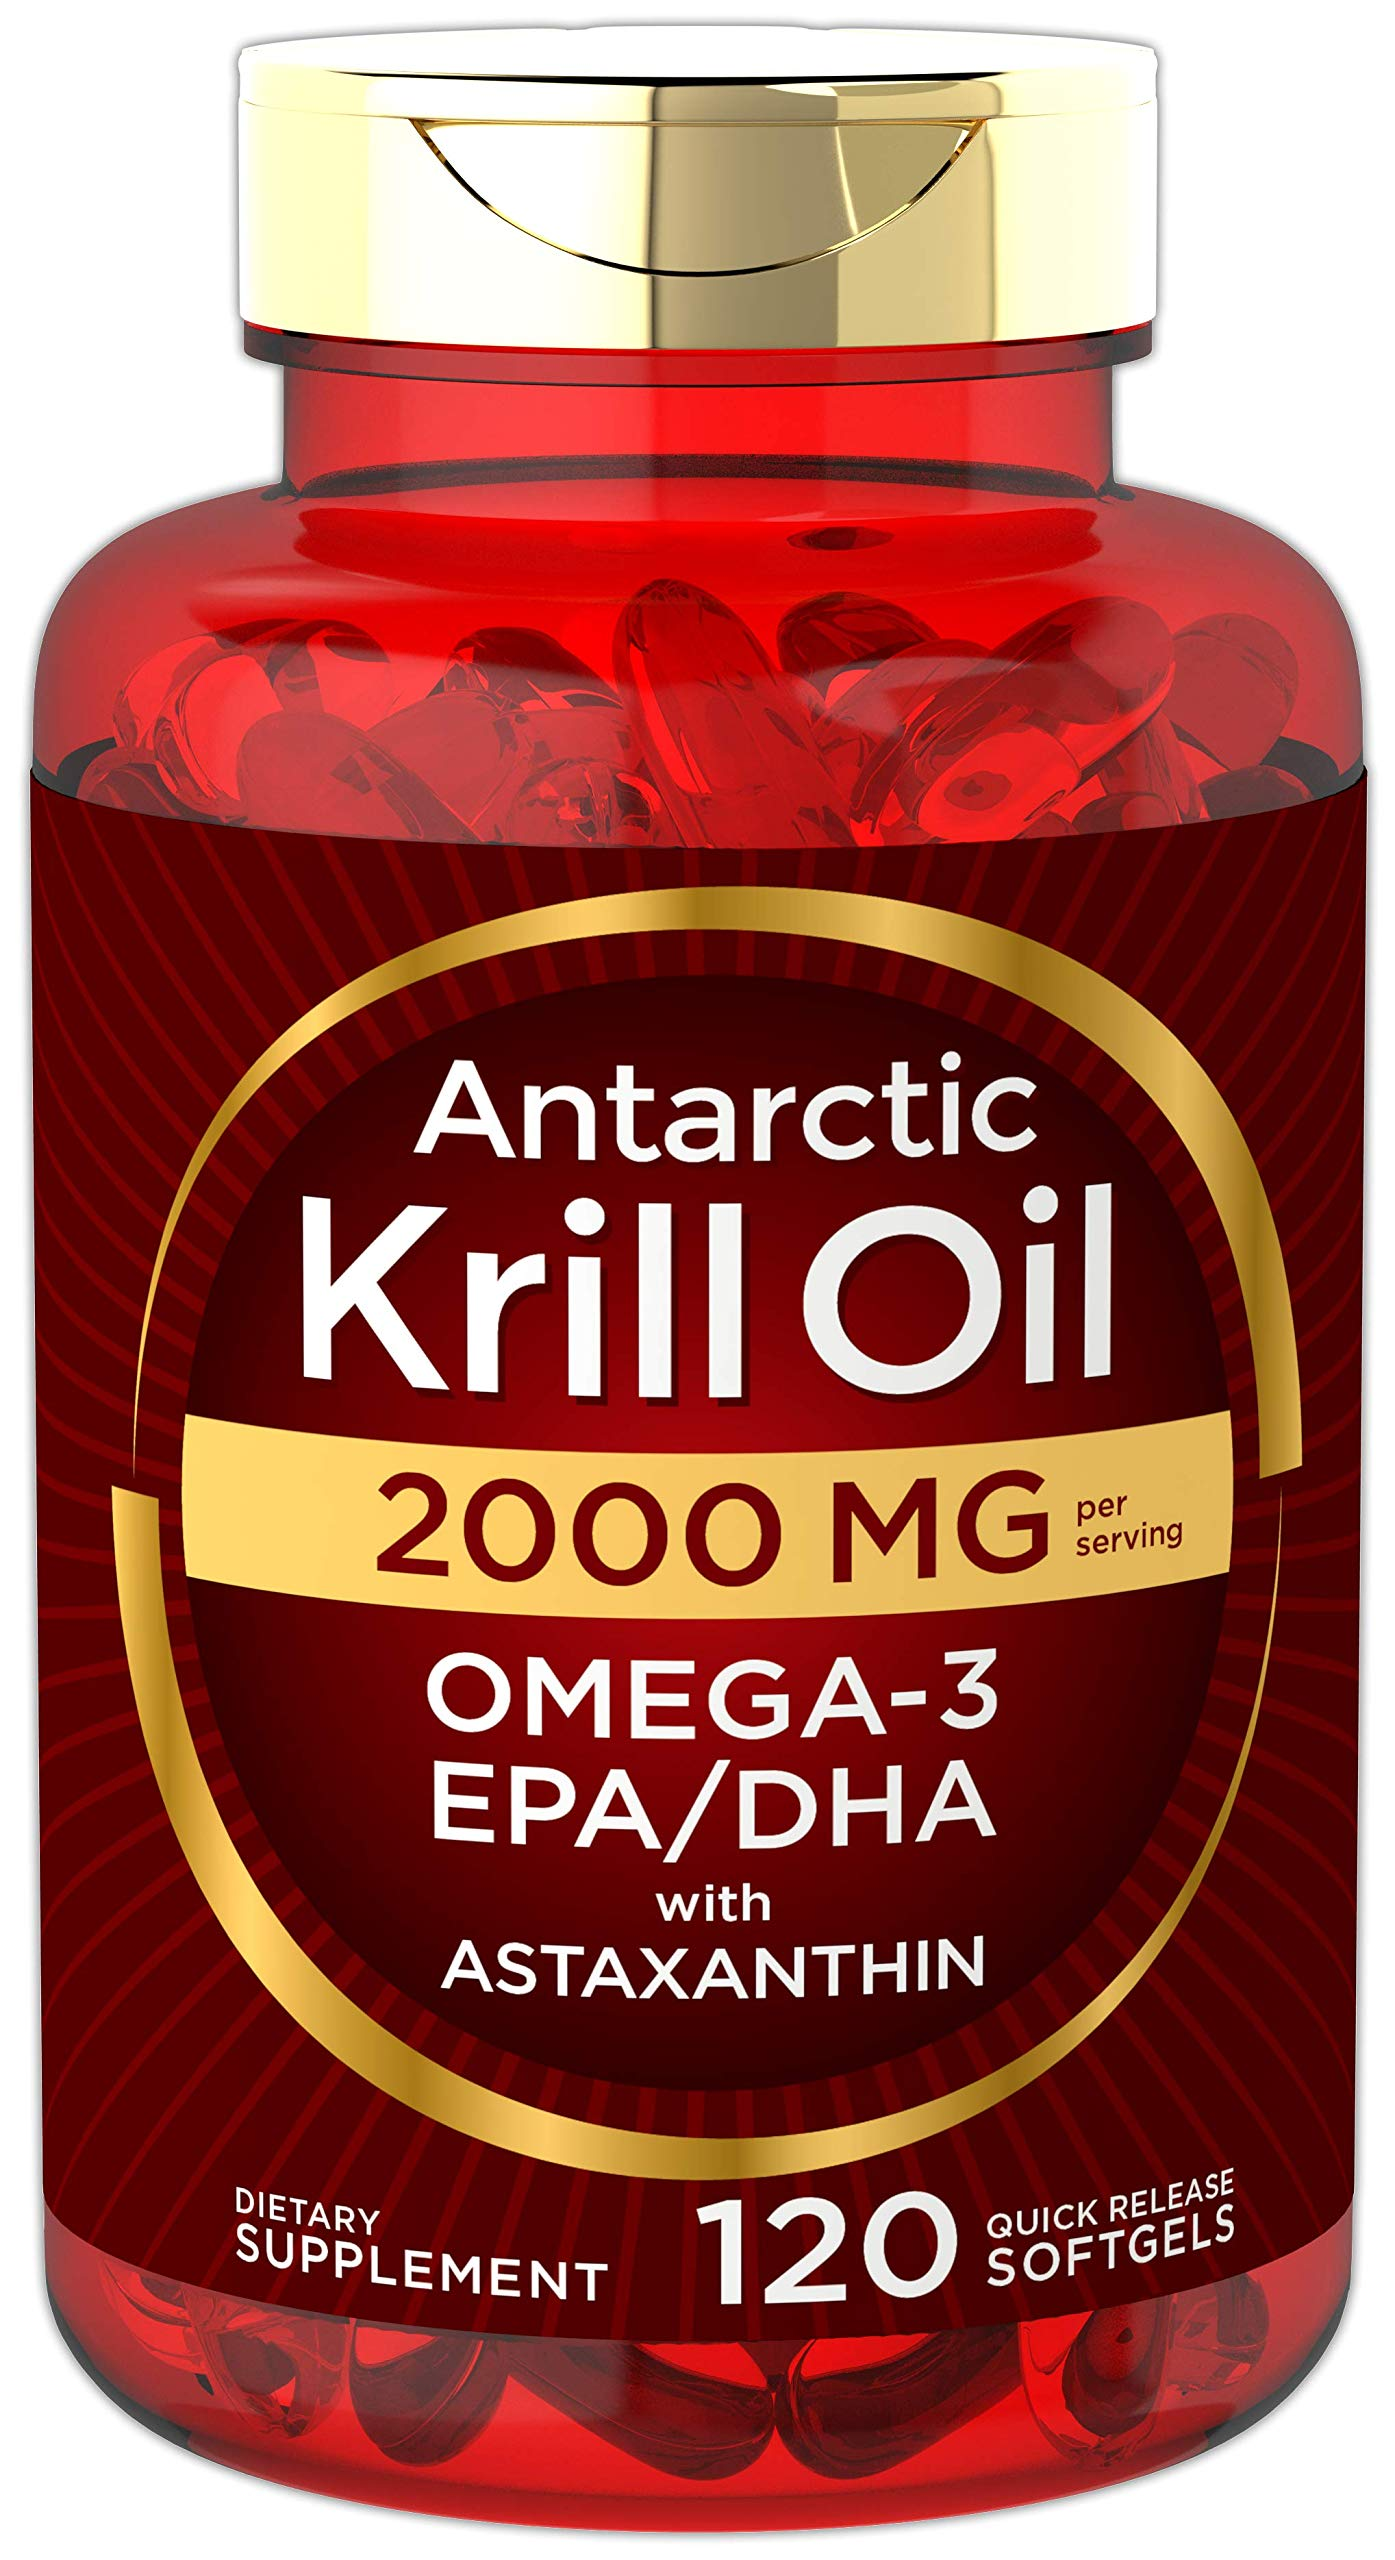 Antarctic Krill Oil 2000 mg 120 Softgels | Omega-3 EPA, DHA, with Astaxanthin Supplement Sourced from Red Krill | Maximum Strength | Laboratory Tested by Carlyle